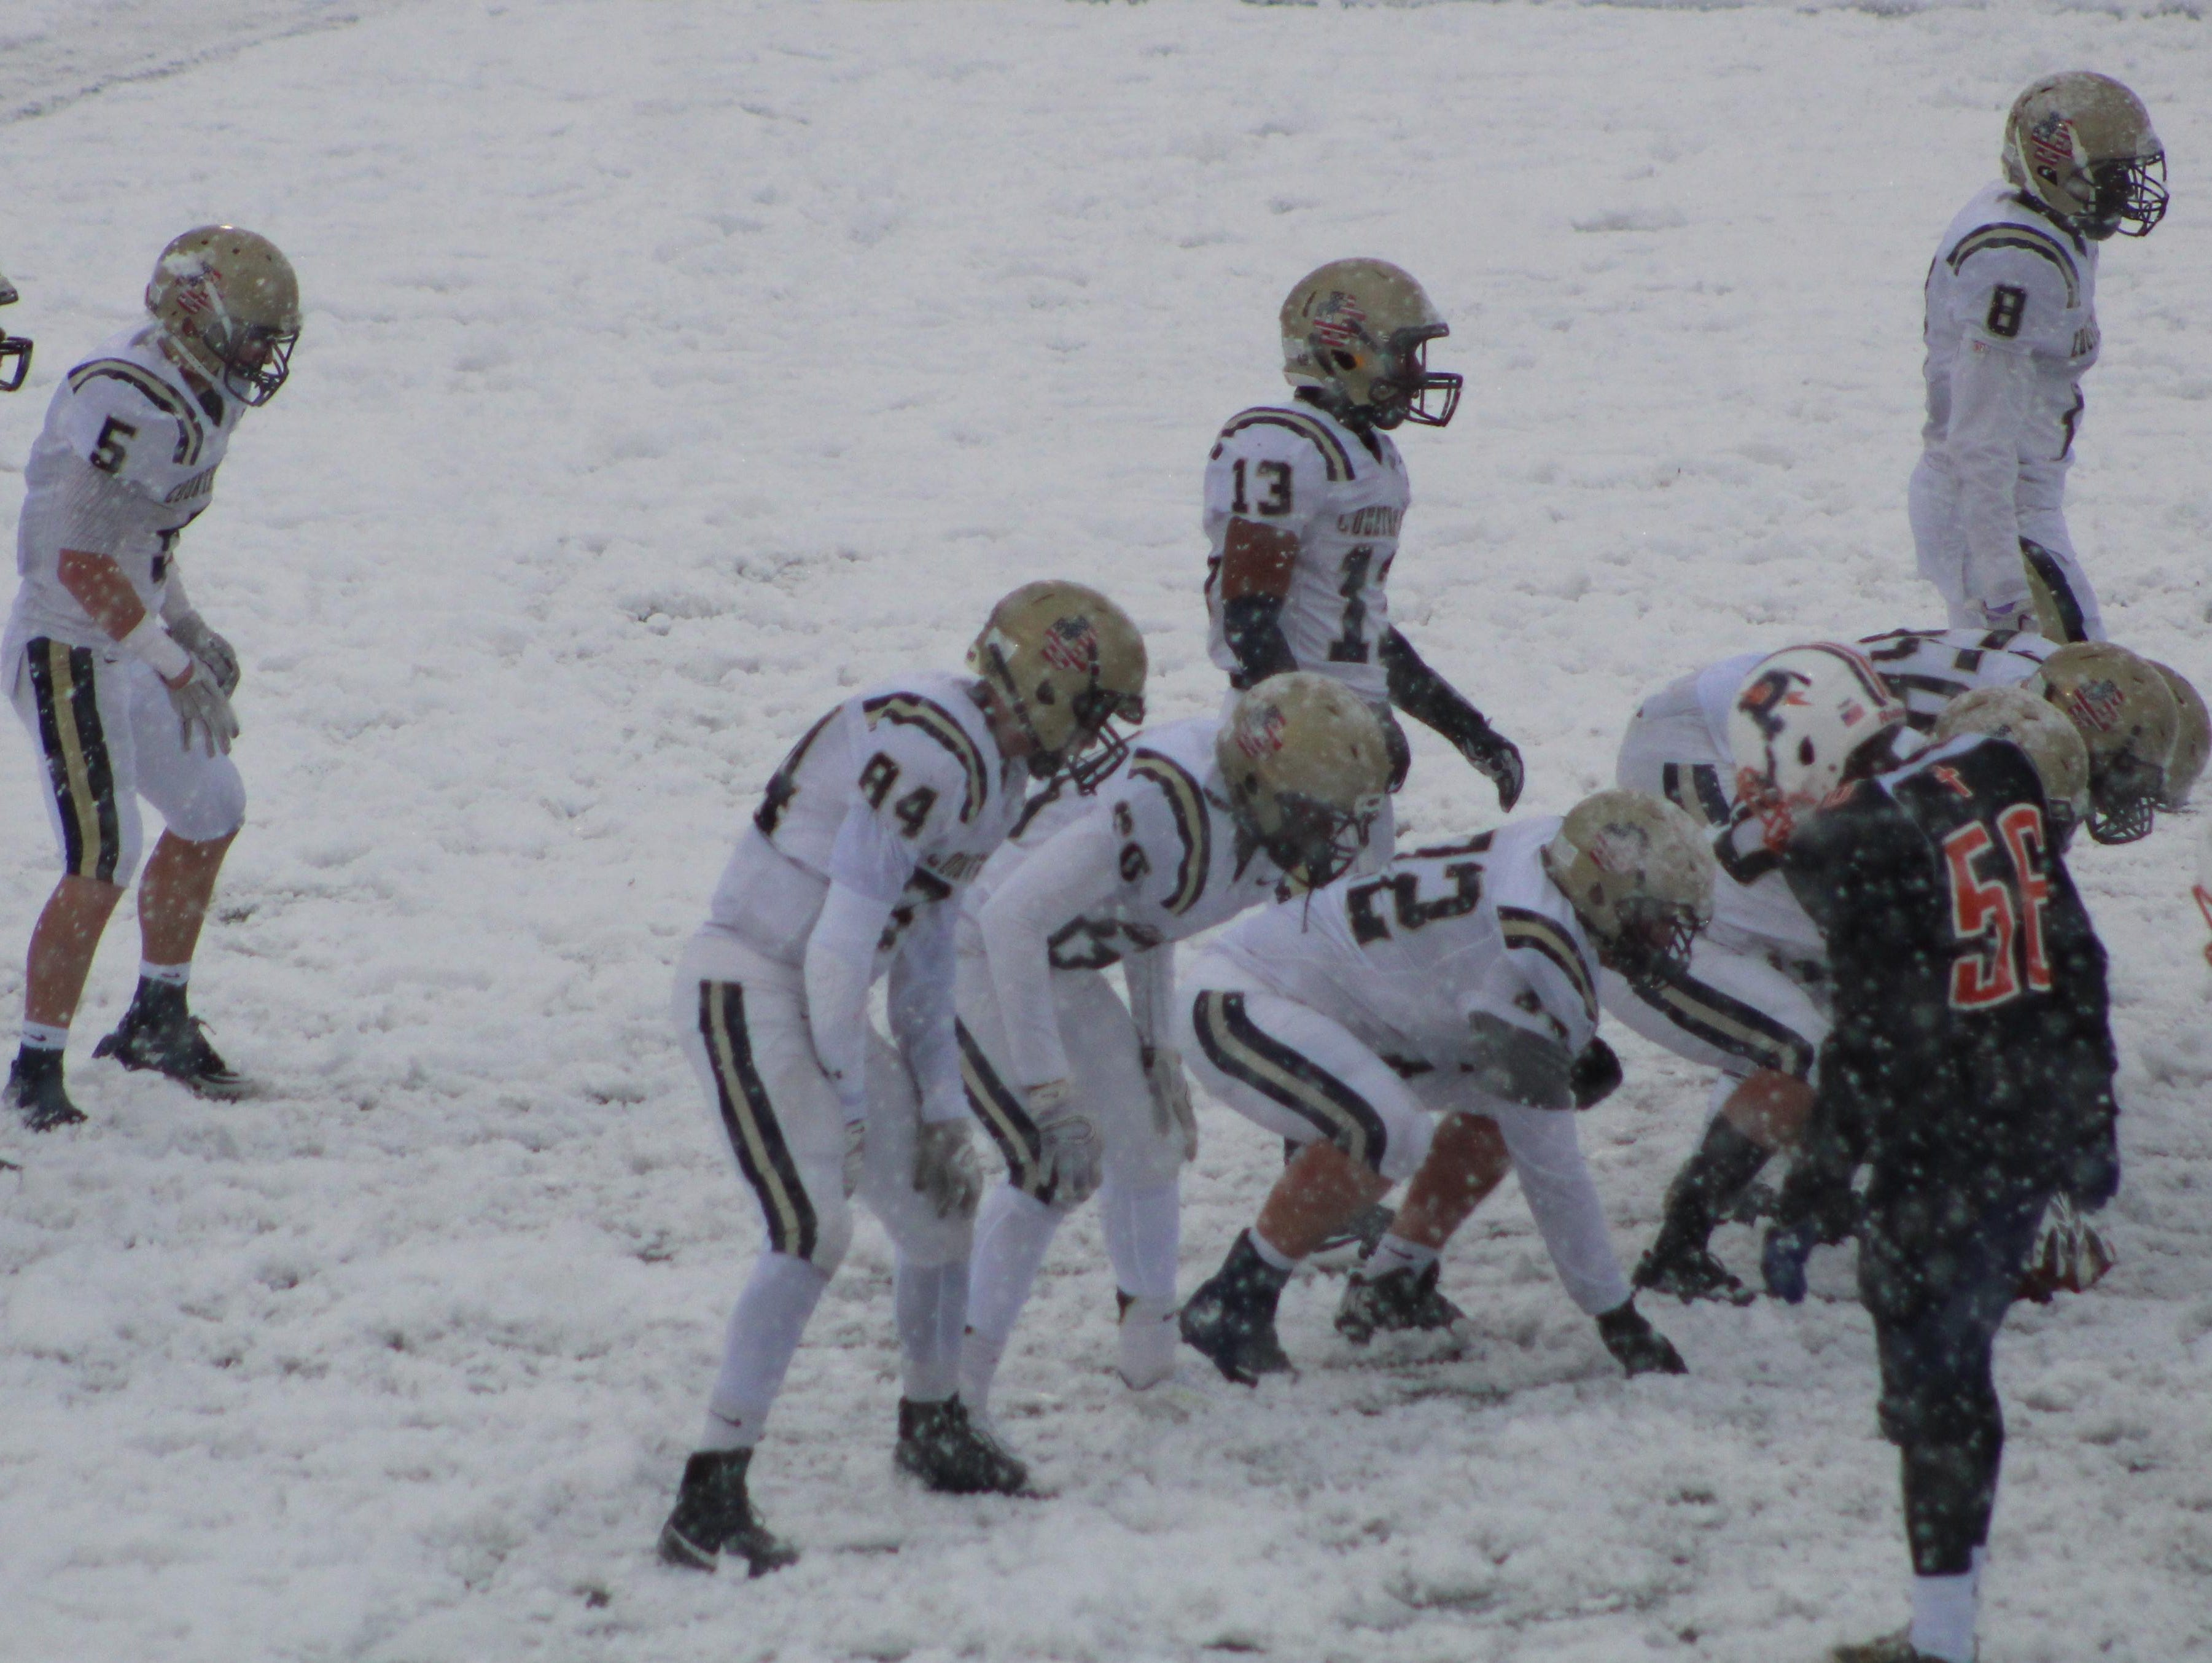 Detroit Country Day's season came to an end on a snow-covered field at West Bloomfield in the Division 4 state semifinal game against Flint Powers Catholic.